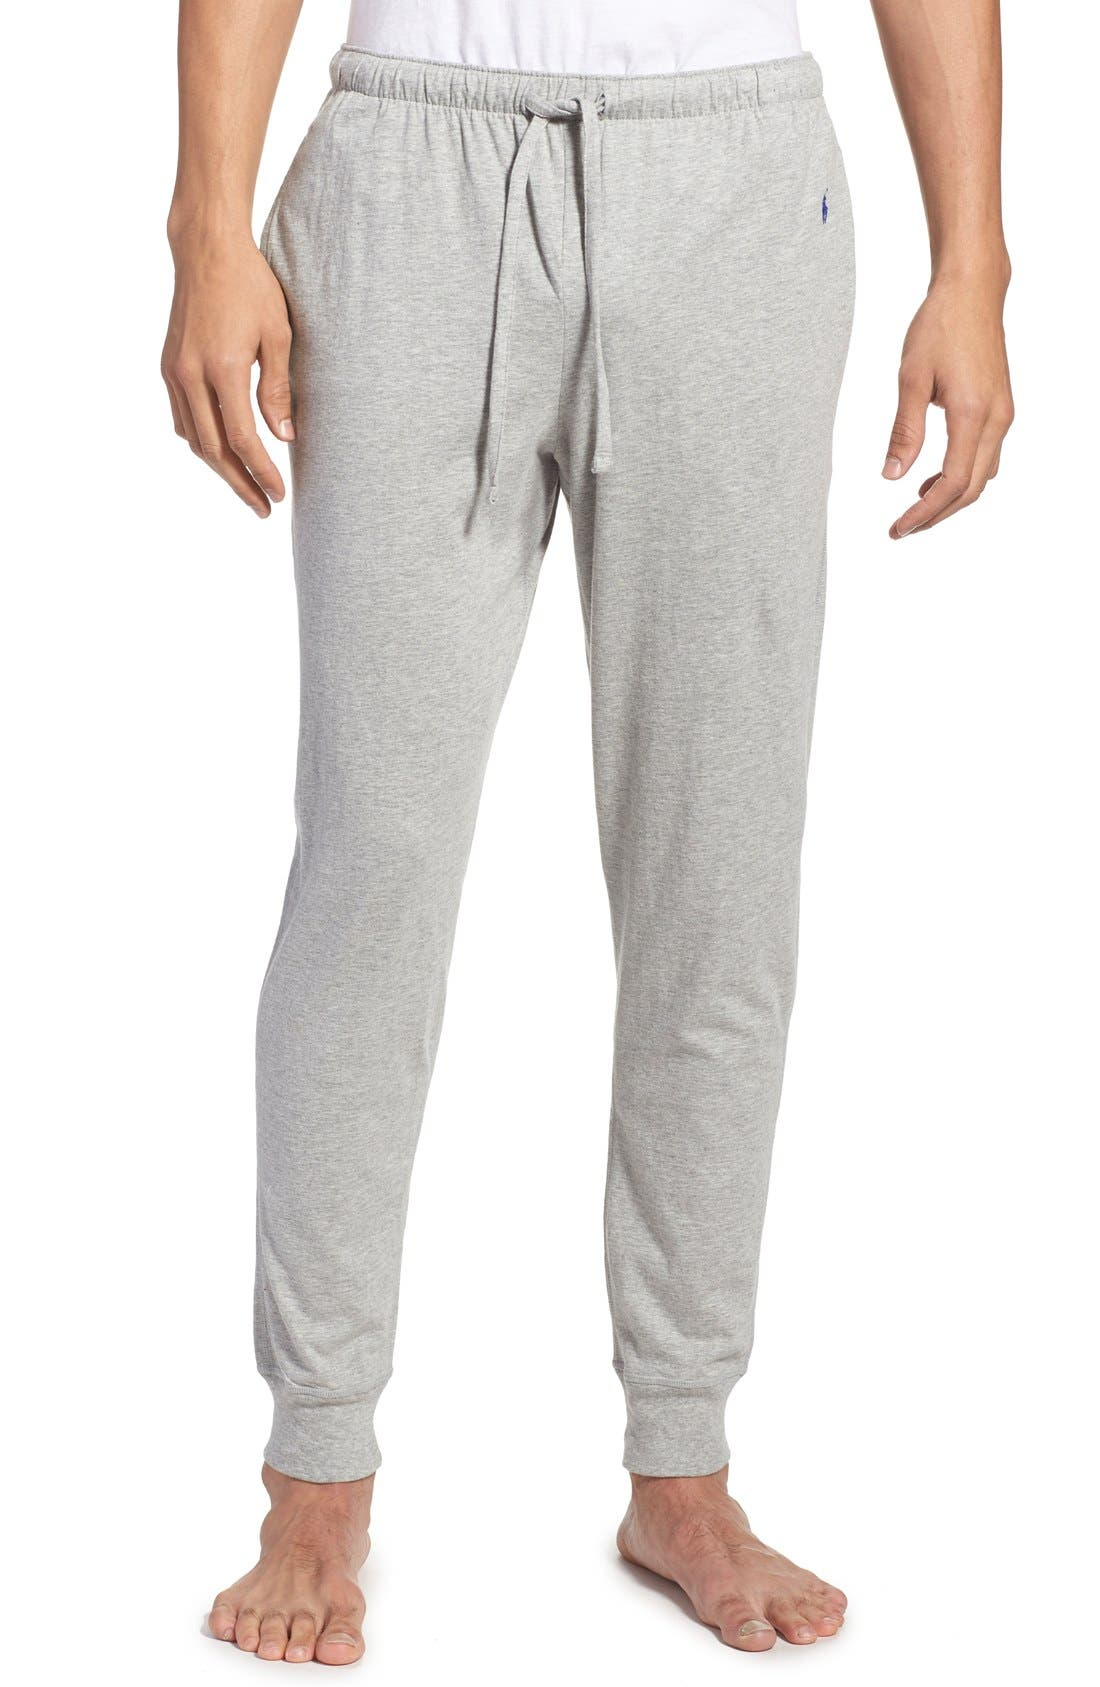 Relaxed Fit Jogger Pants,                             Main thumbnail 1, color,                             Andover Heather